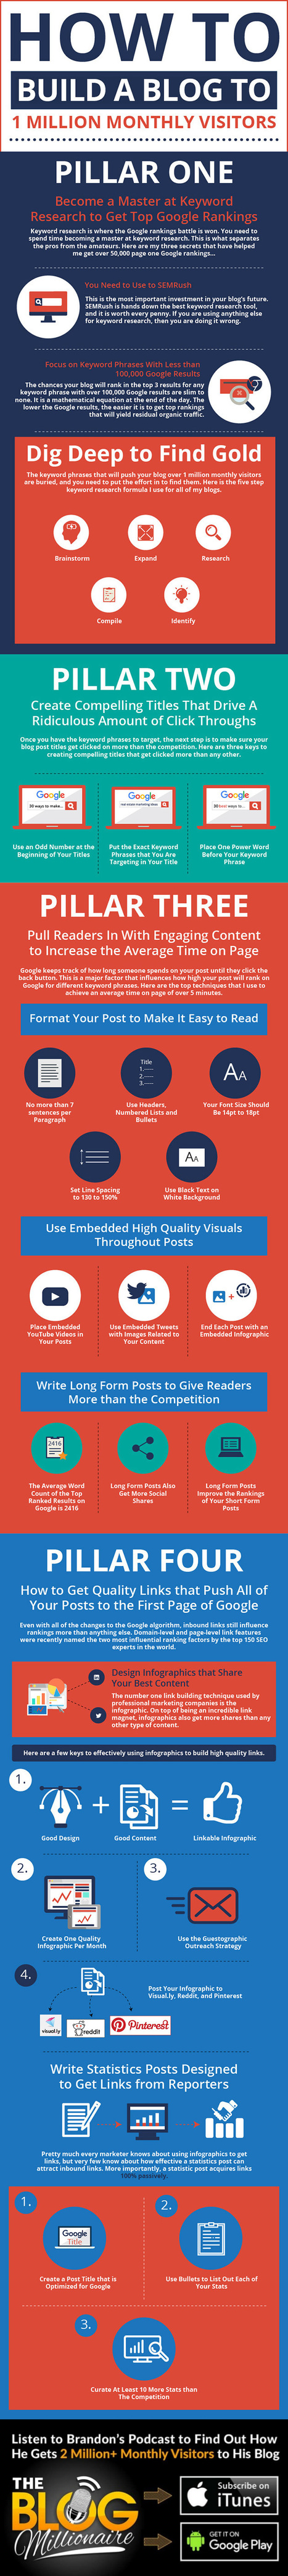 4 Keys to Building a Blog to Over One Million Monthly Visitors #Infographic | Digital Media & Science | Scoop.it